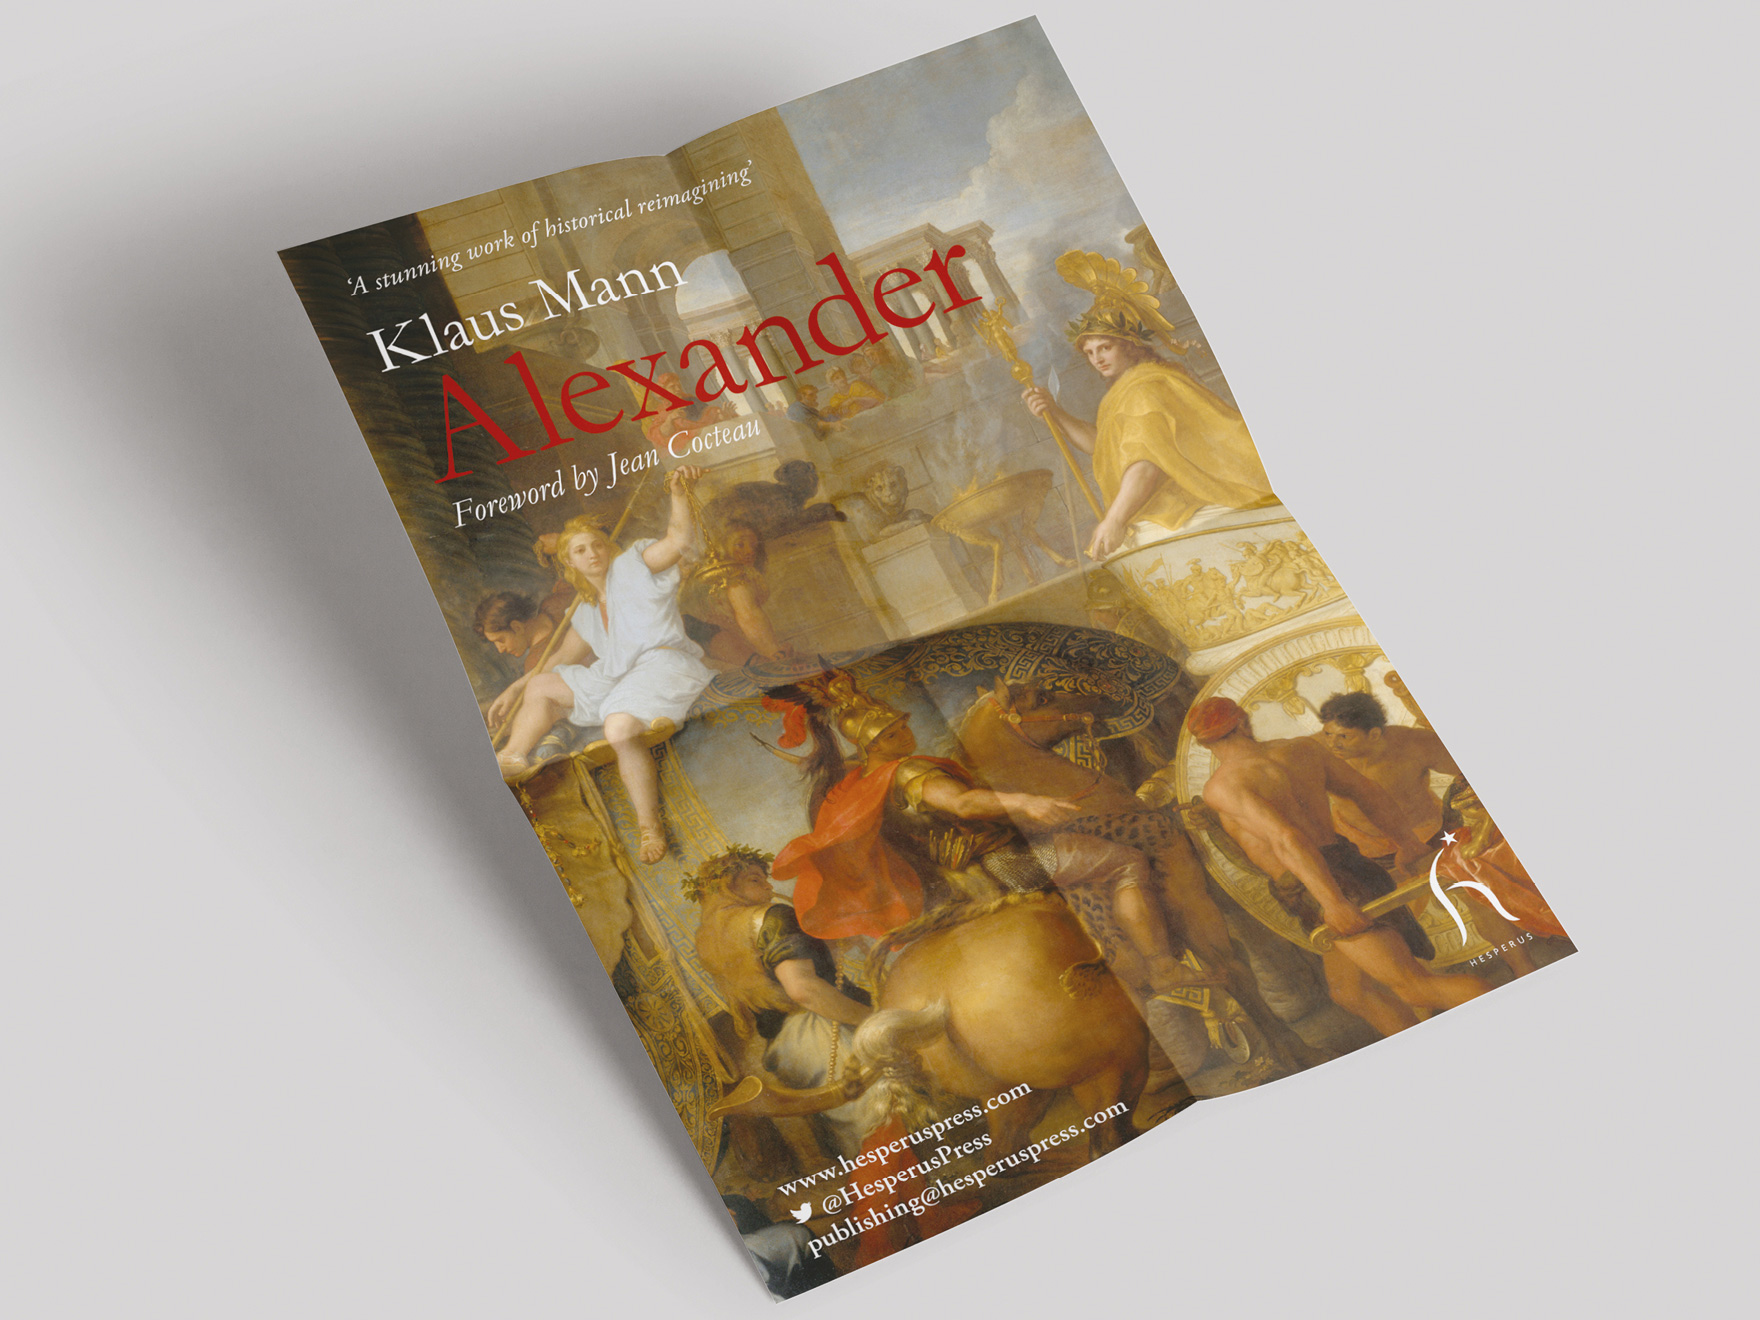 A promotional poster the Hesperus Press book release of Klaus Mann's Alexander.  The picture links to a page showing further examples of menu and promotional items designed by Roland Codd.